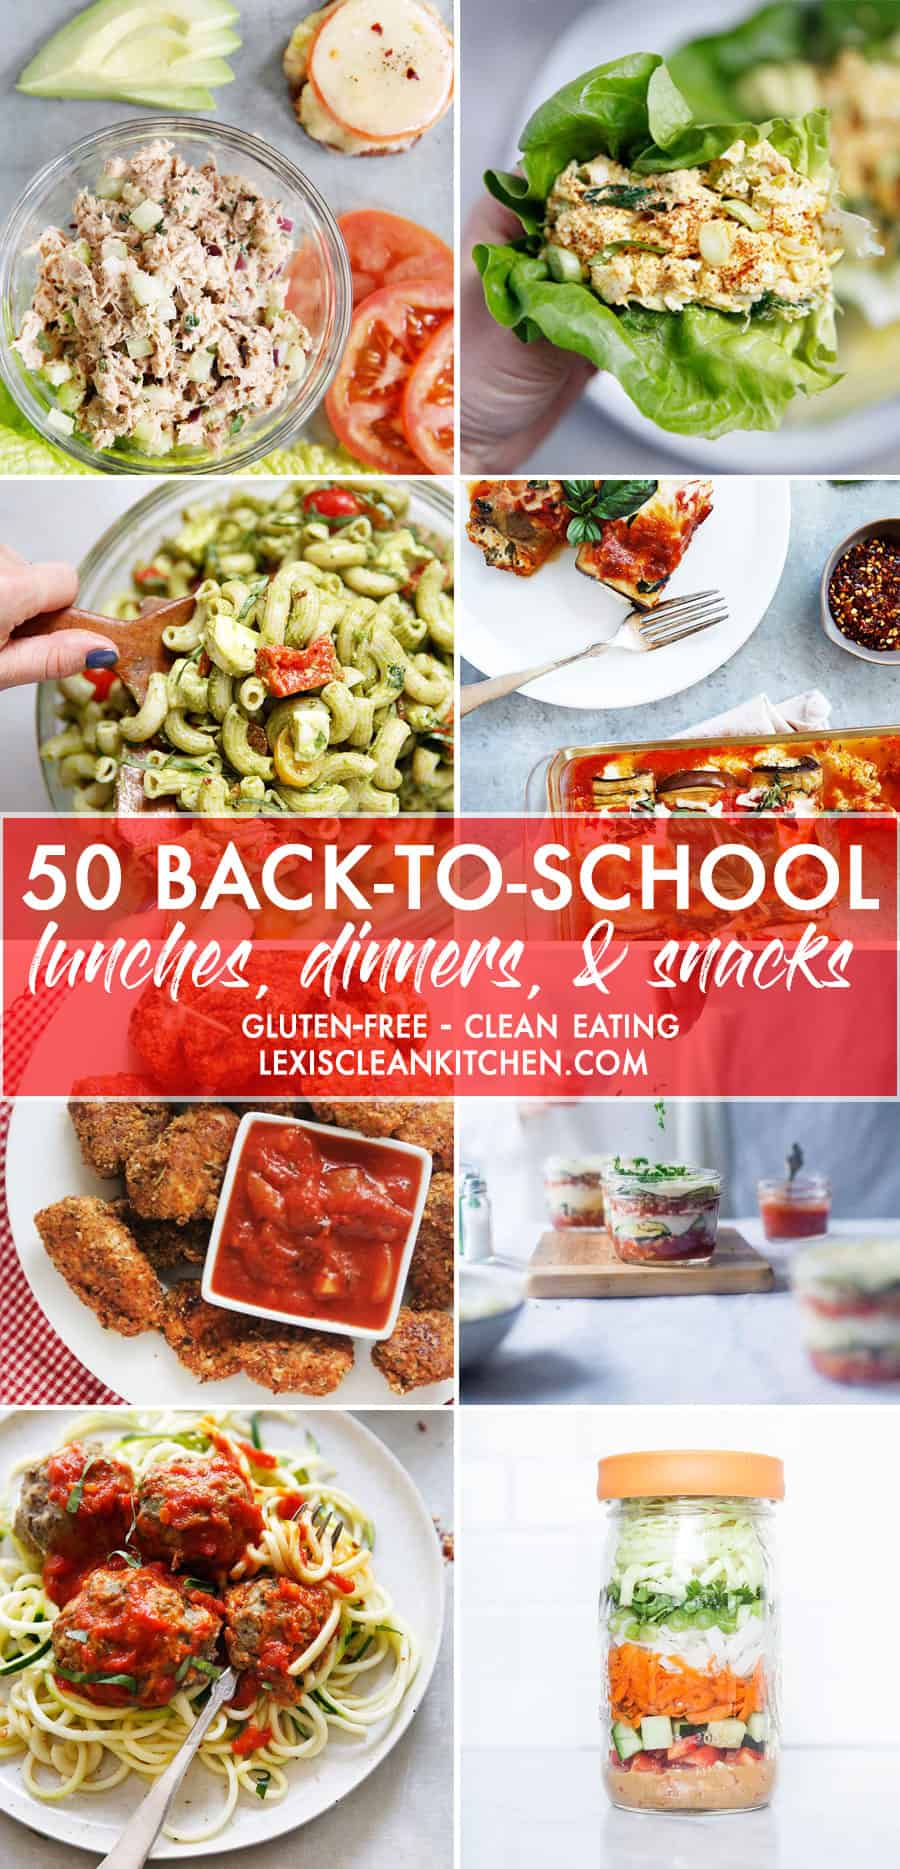 50 Back To School Easy Lunches, Dinners, and Snacks That Are Gluten-Free - Lexi's Clean Kitchen